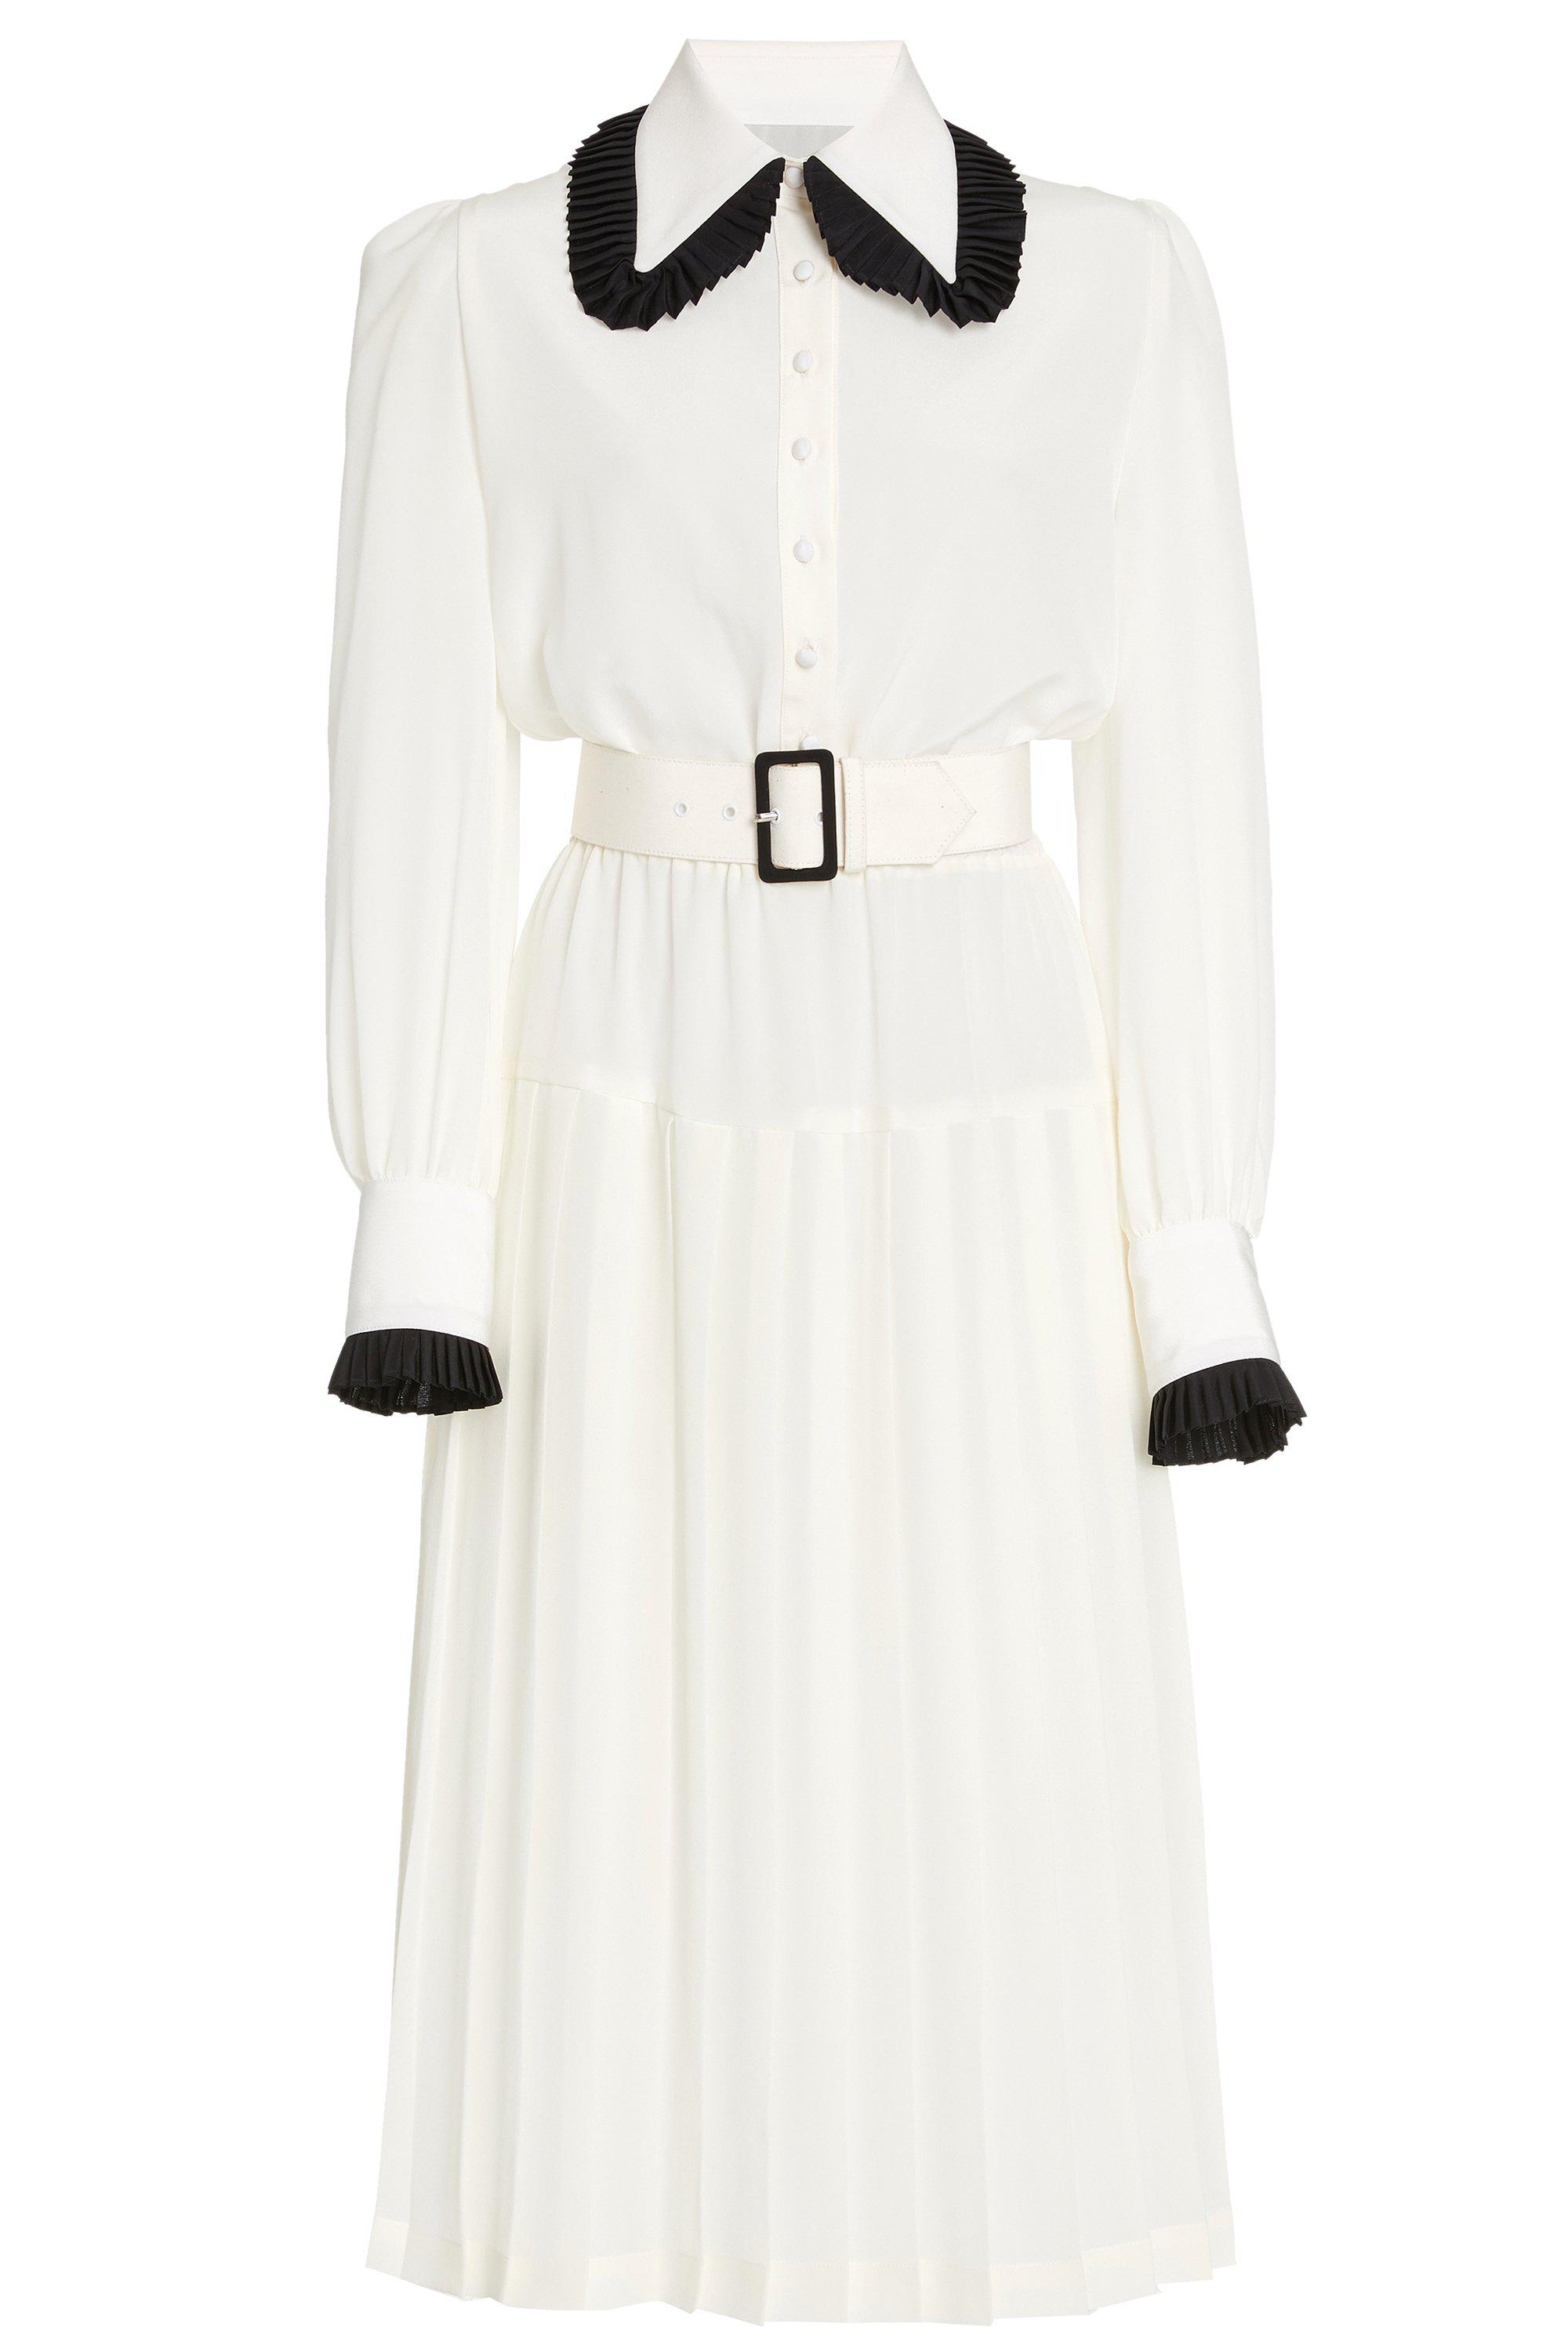 OFF WHITE AND BLACK BELTED SILK PLEATED COLLAR DRESS 3